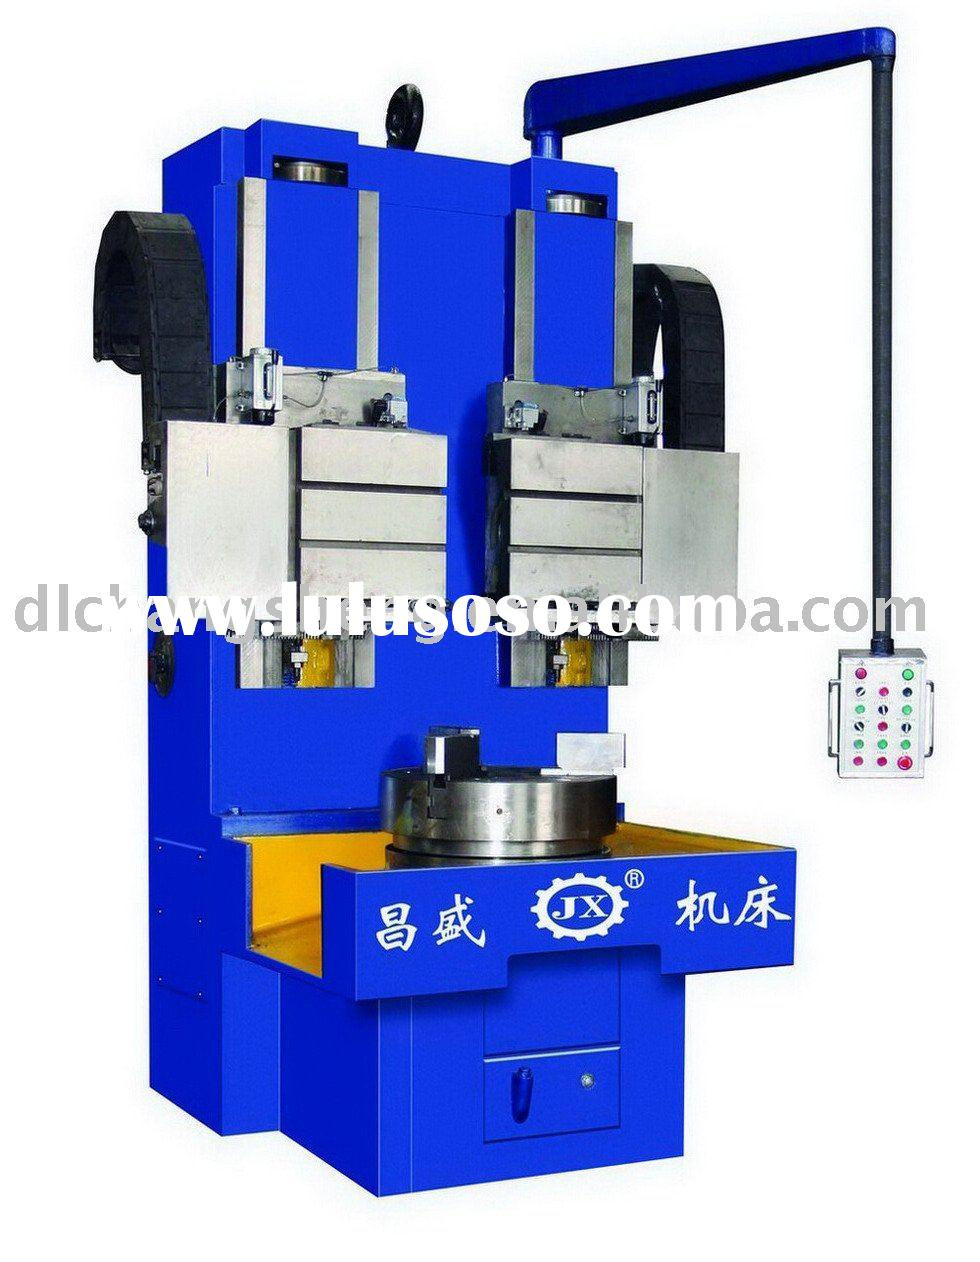 CB7750 multi-tool vertical lathe machine